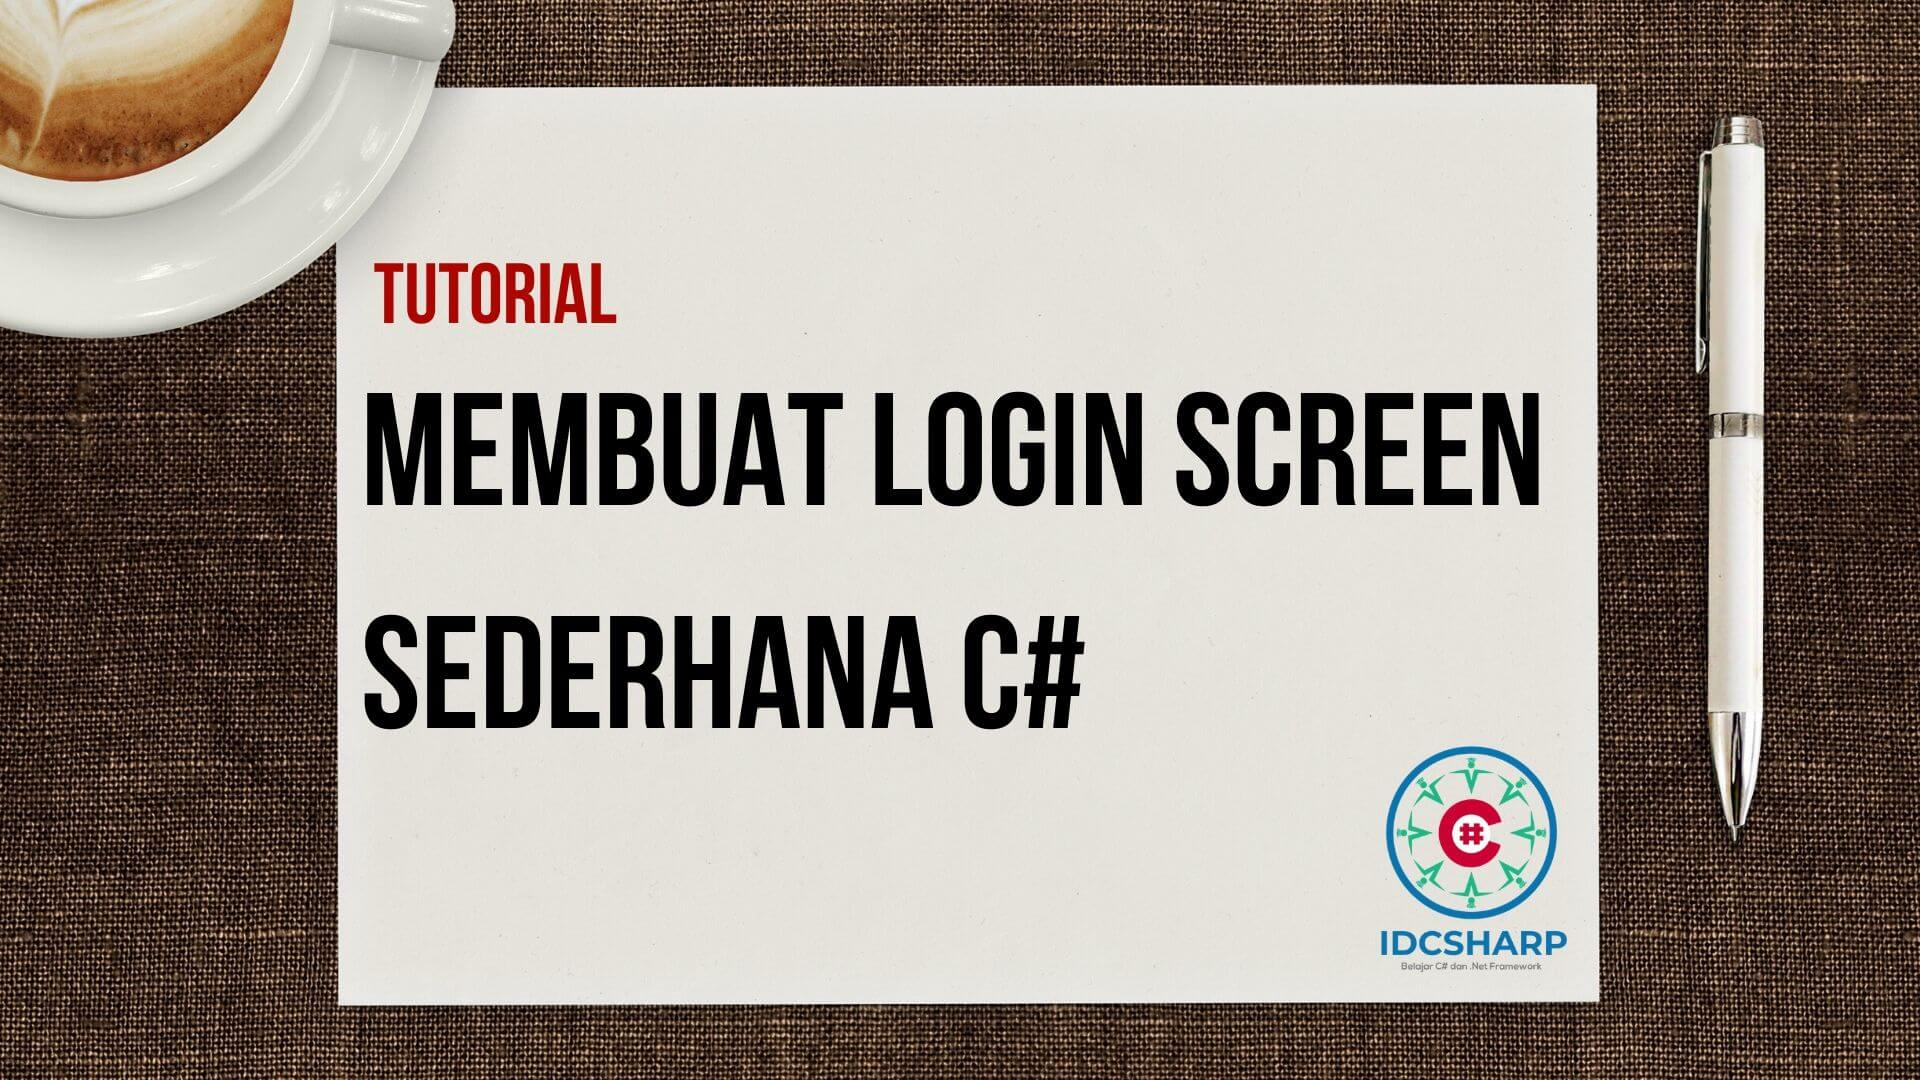 Tutorial Membuat Login Screen Visual Studio C#